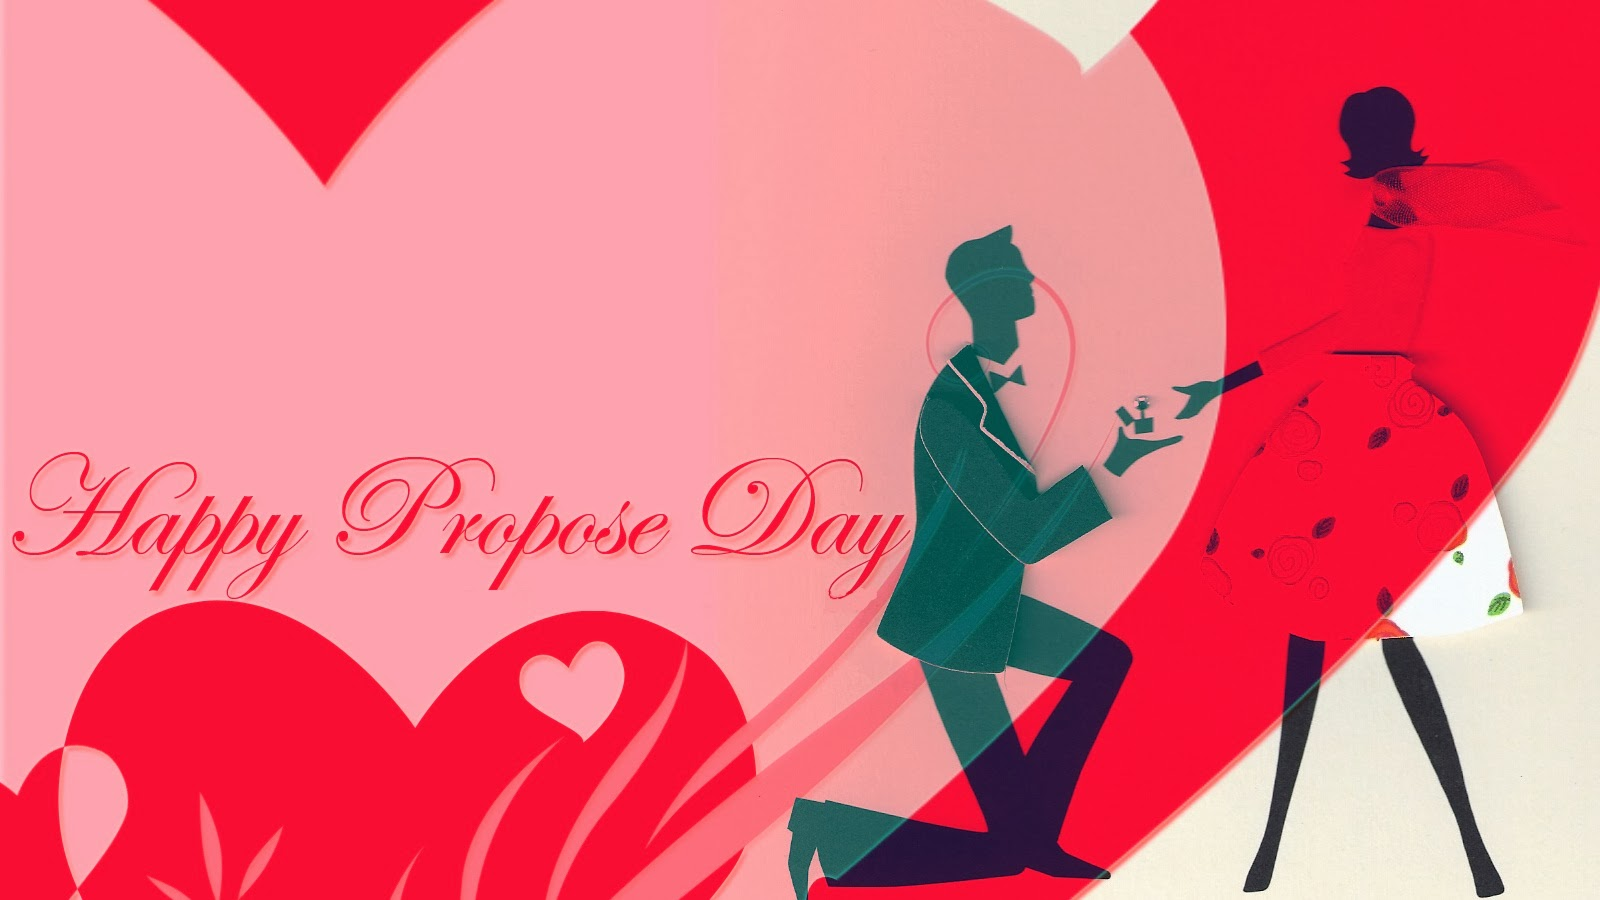 Propose day 2017 Photo, Picture & Image For Girlfriend & Boyfriend